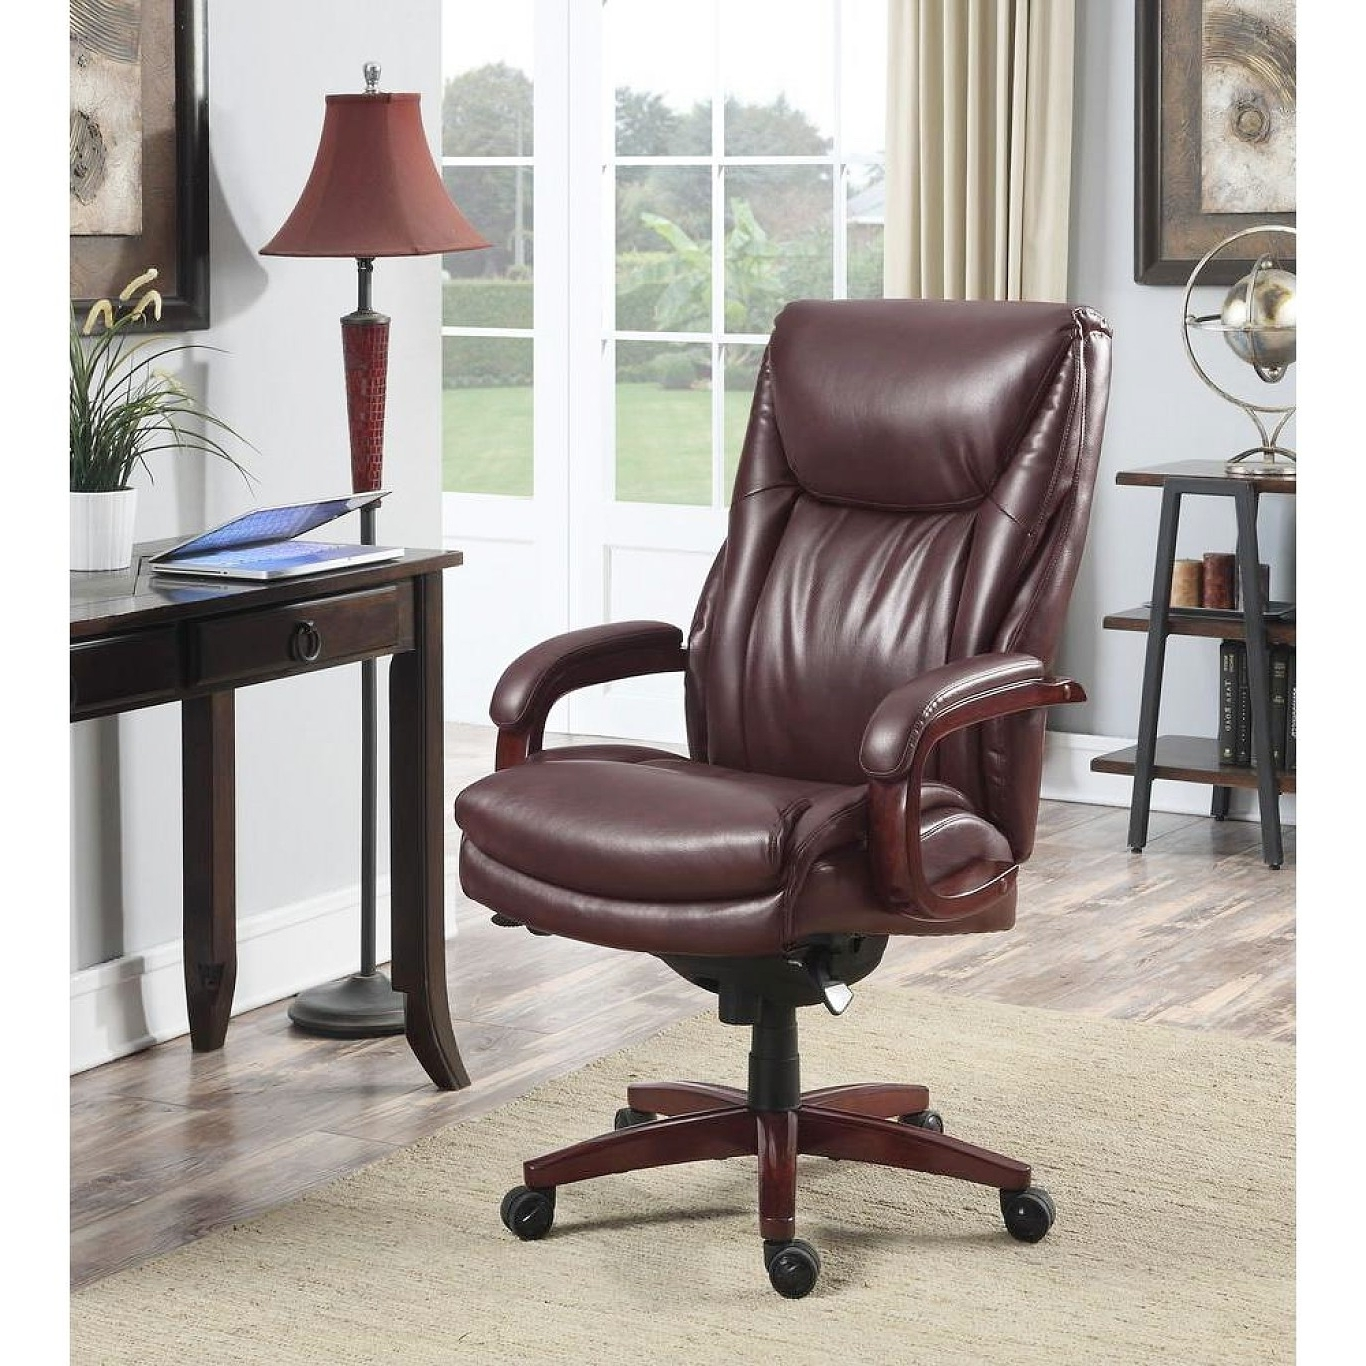 Office Chairs Office Wall Cabinets Executive Office Leather Chair Throughout 2018 Green Executive Office Chairs (View 15 of 20)